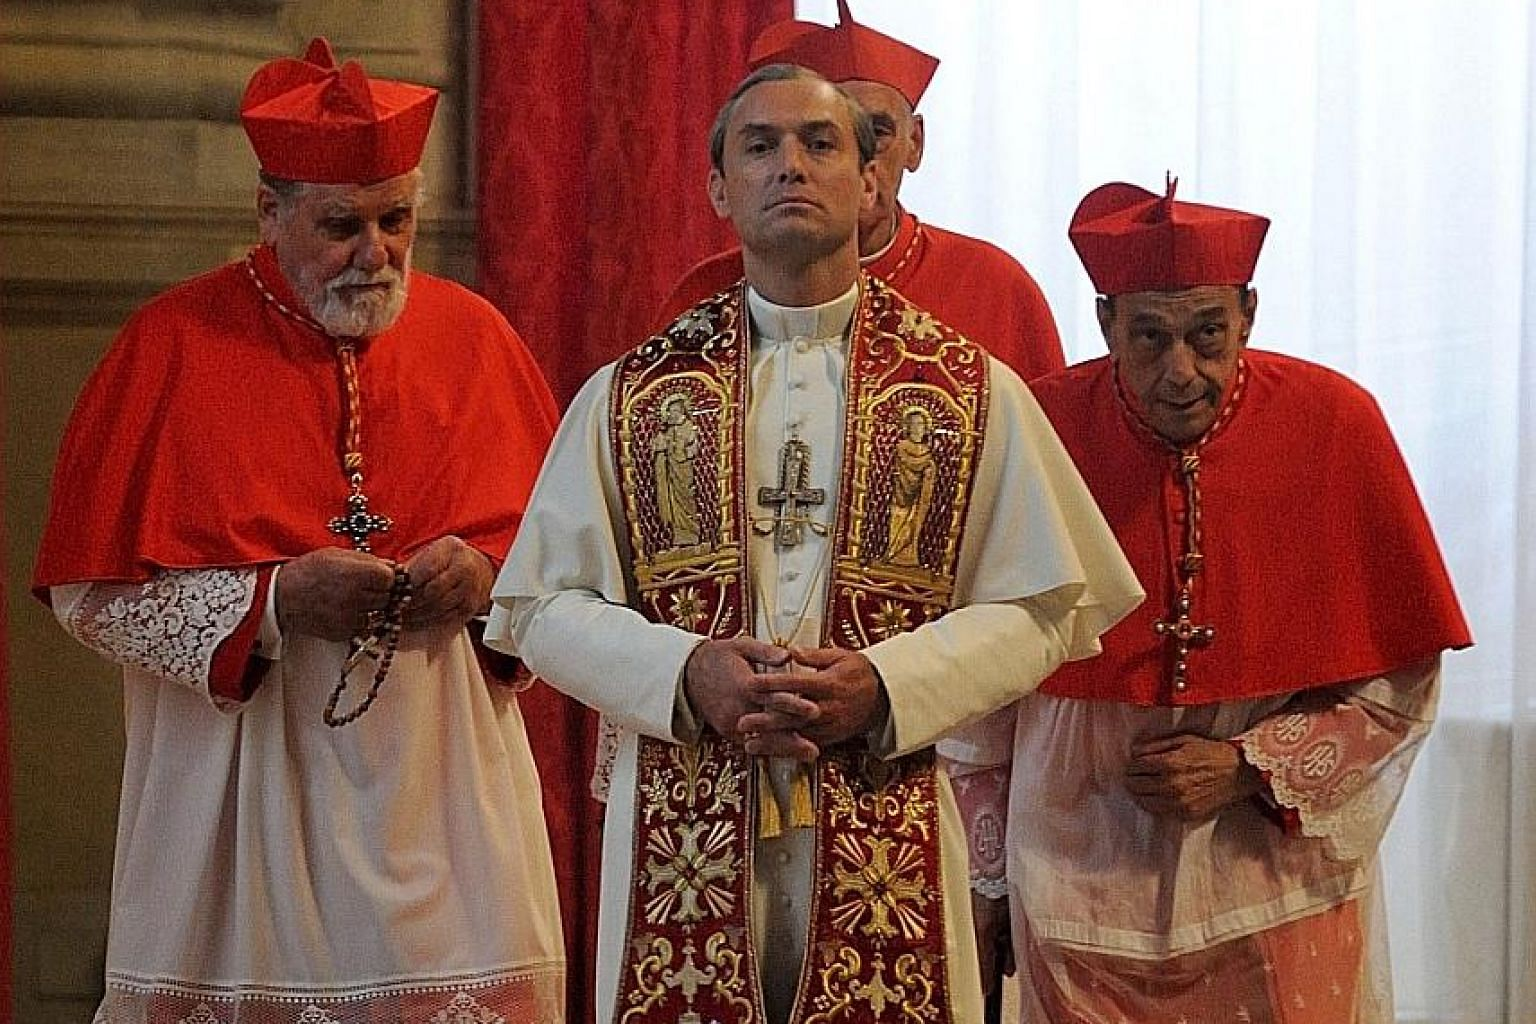 Jude Law (above) plays a Pope who seems to be part-Bond villain and part-saint in The Young Pope.